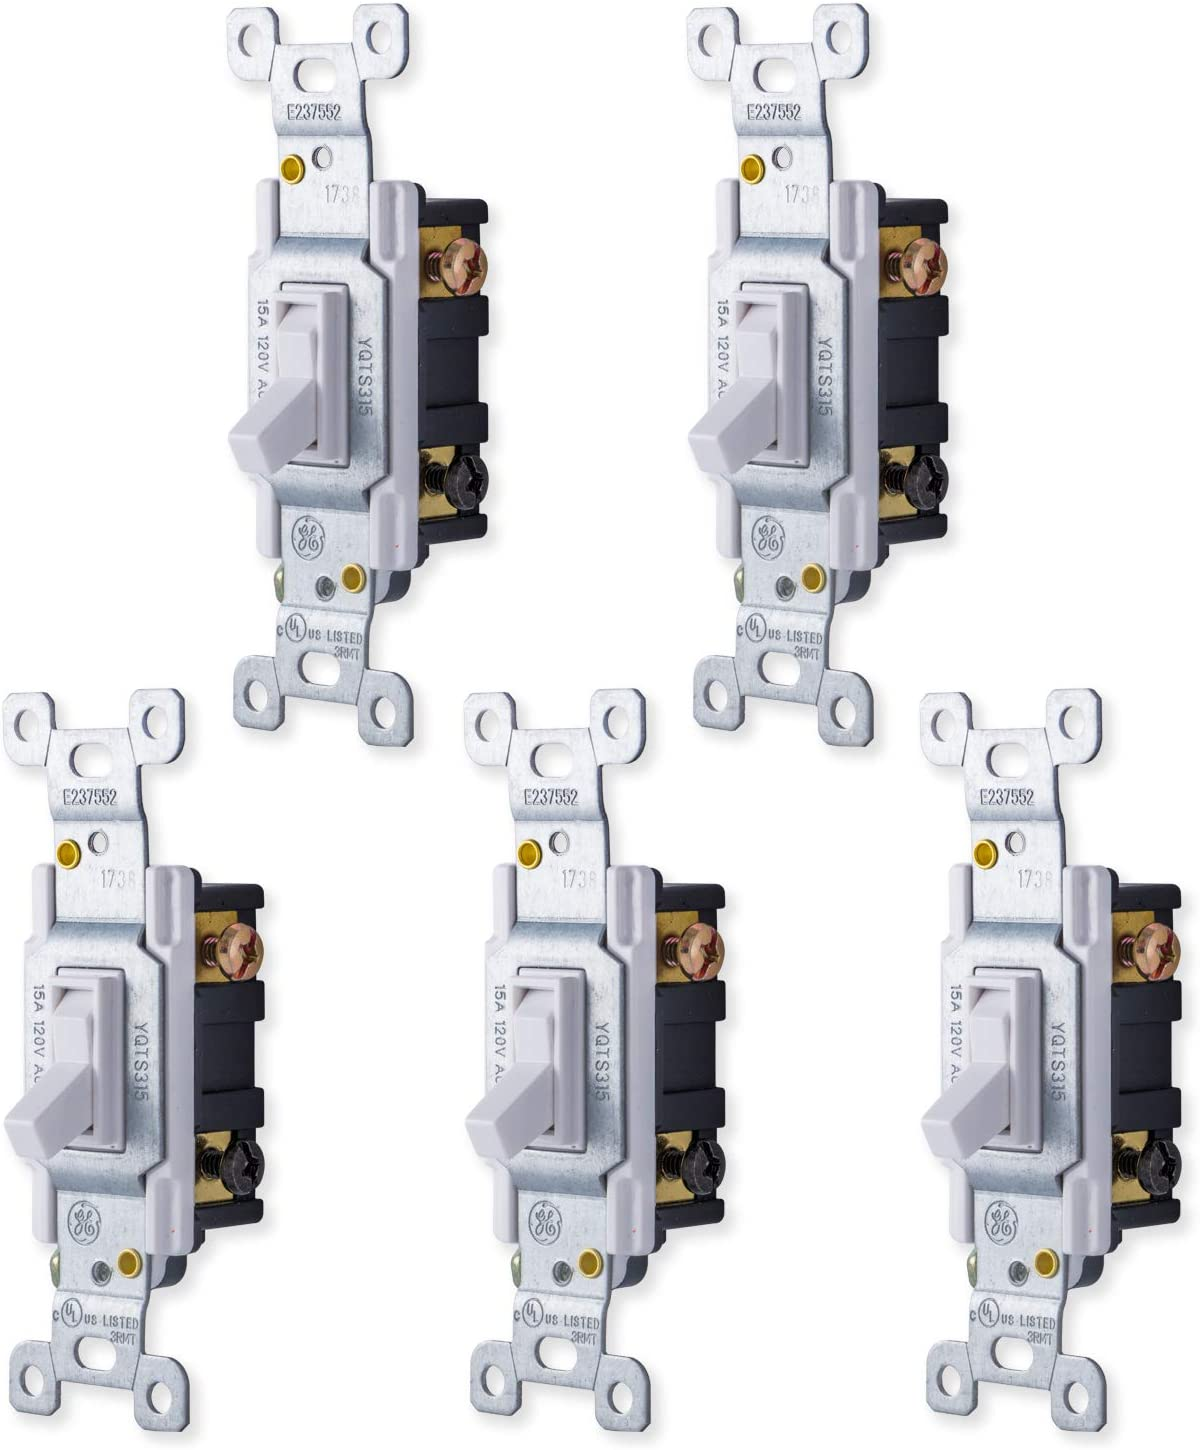 GE, White, Grounding Toggle 5 Pack, 3-Way, In Wall On/Off Fan & Light Switch Replacement, 15 Amp, For Home, Office & Kitchen, Ul Listed, Wallplate not included, 44030